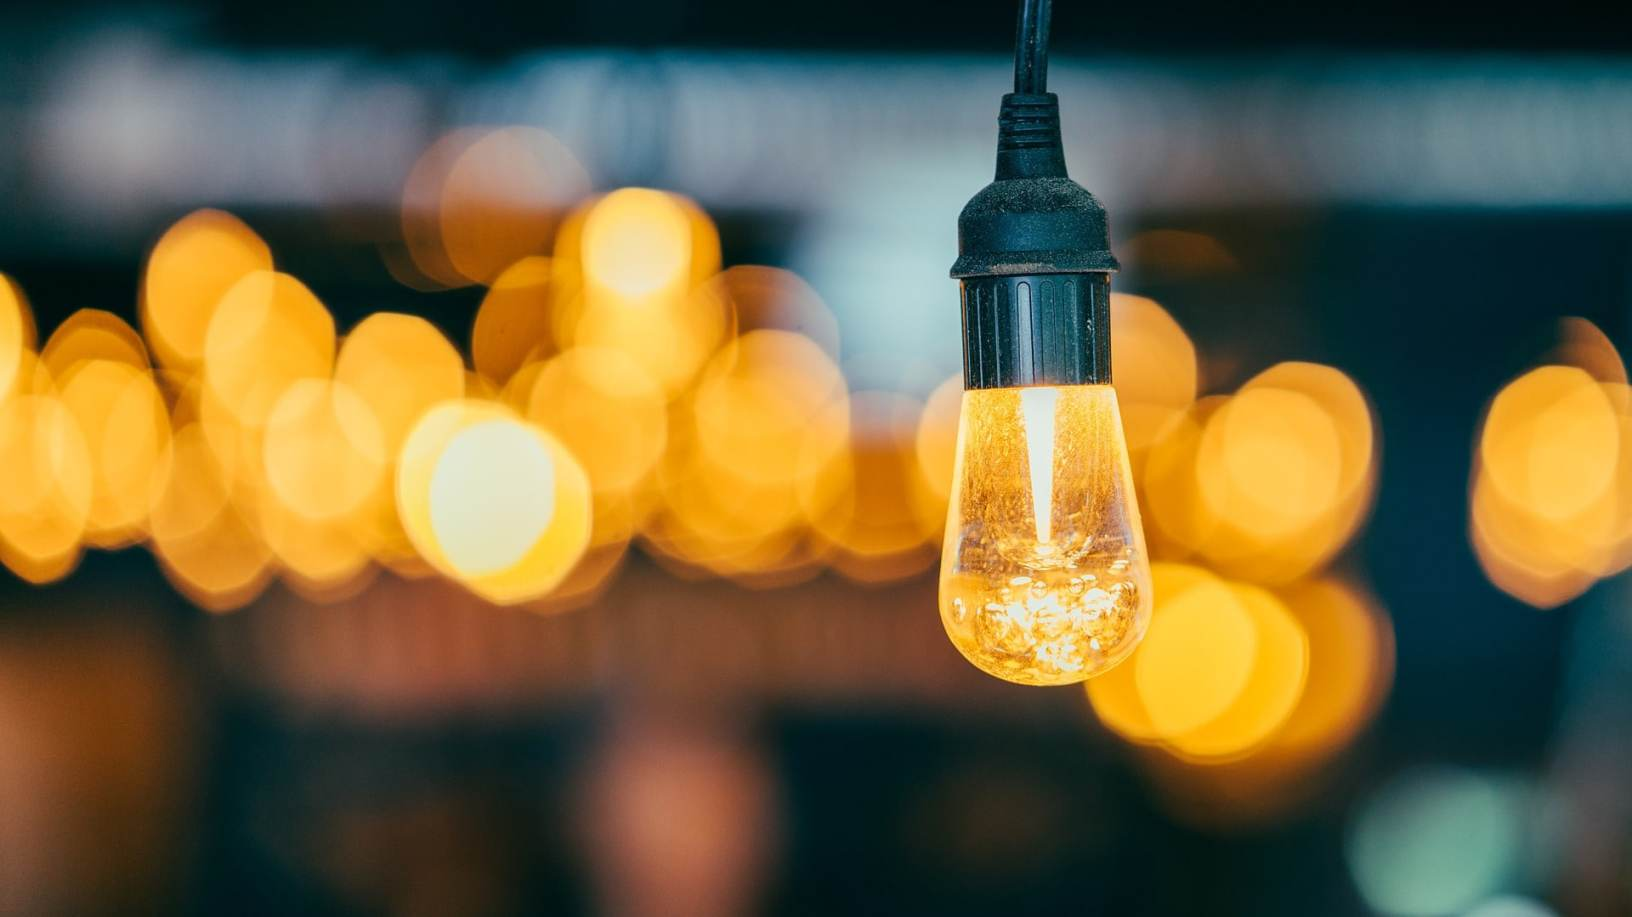 Idea demonstrated by lightbulb